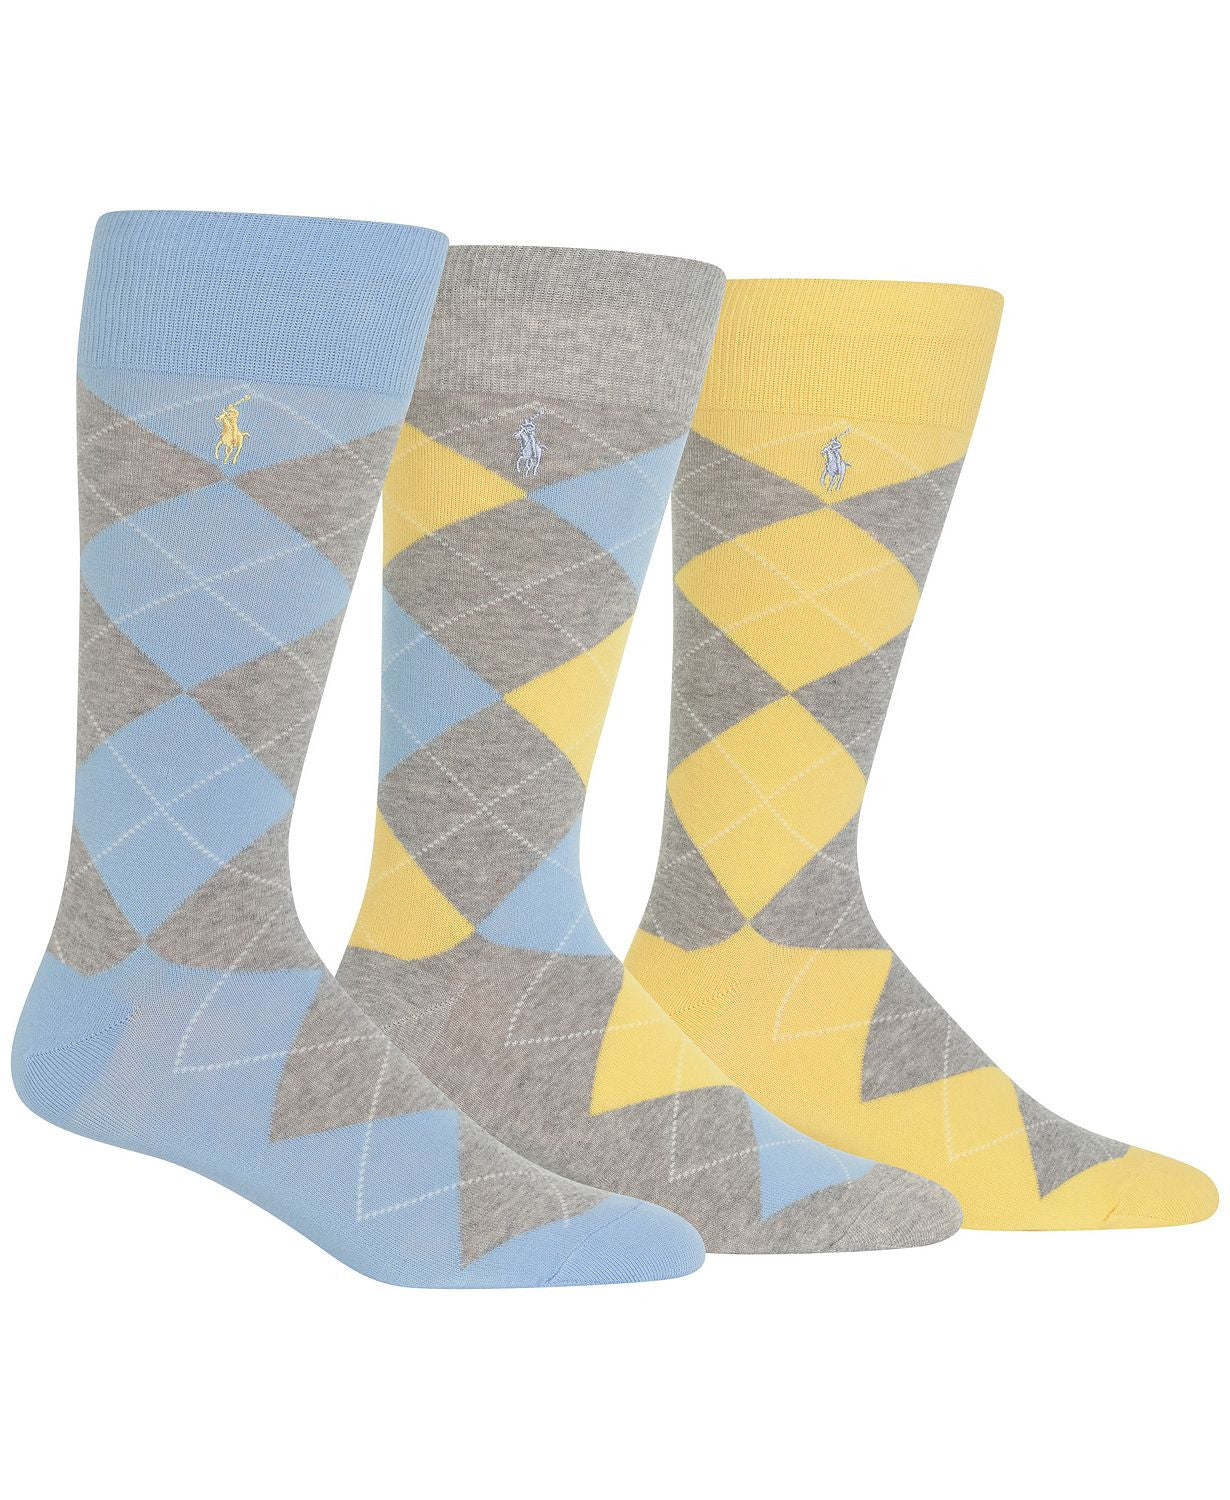 Polo Ralph Lauren Argyle Socks Pack Of 3 Light Blue / Yellow